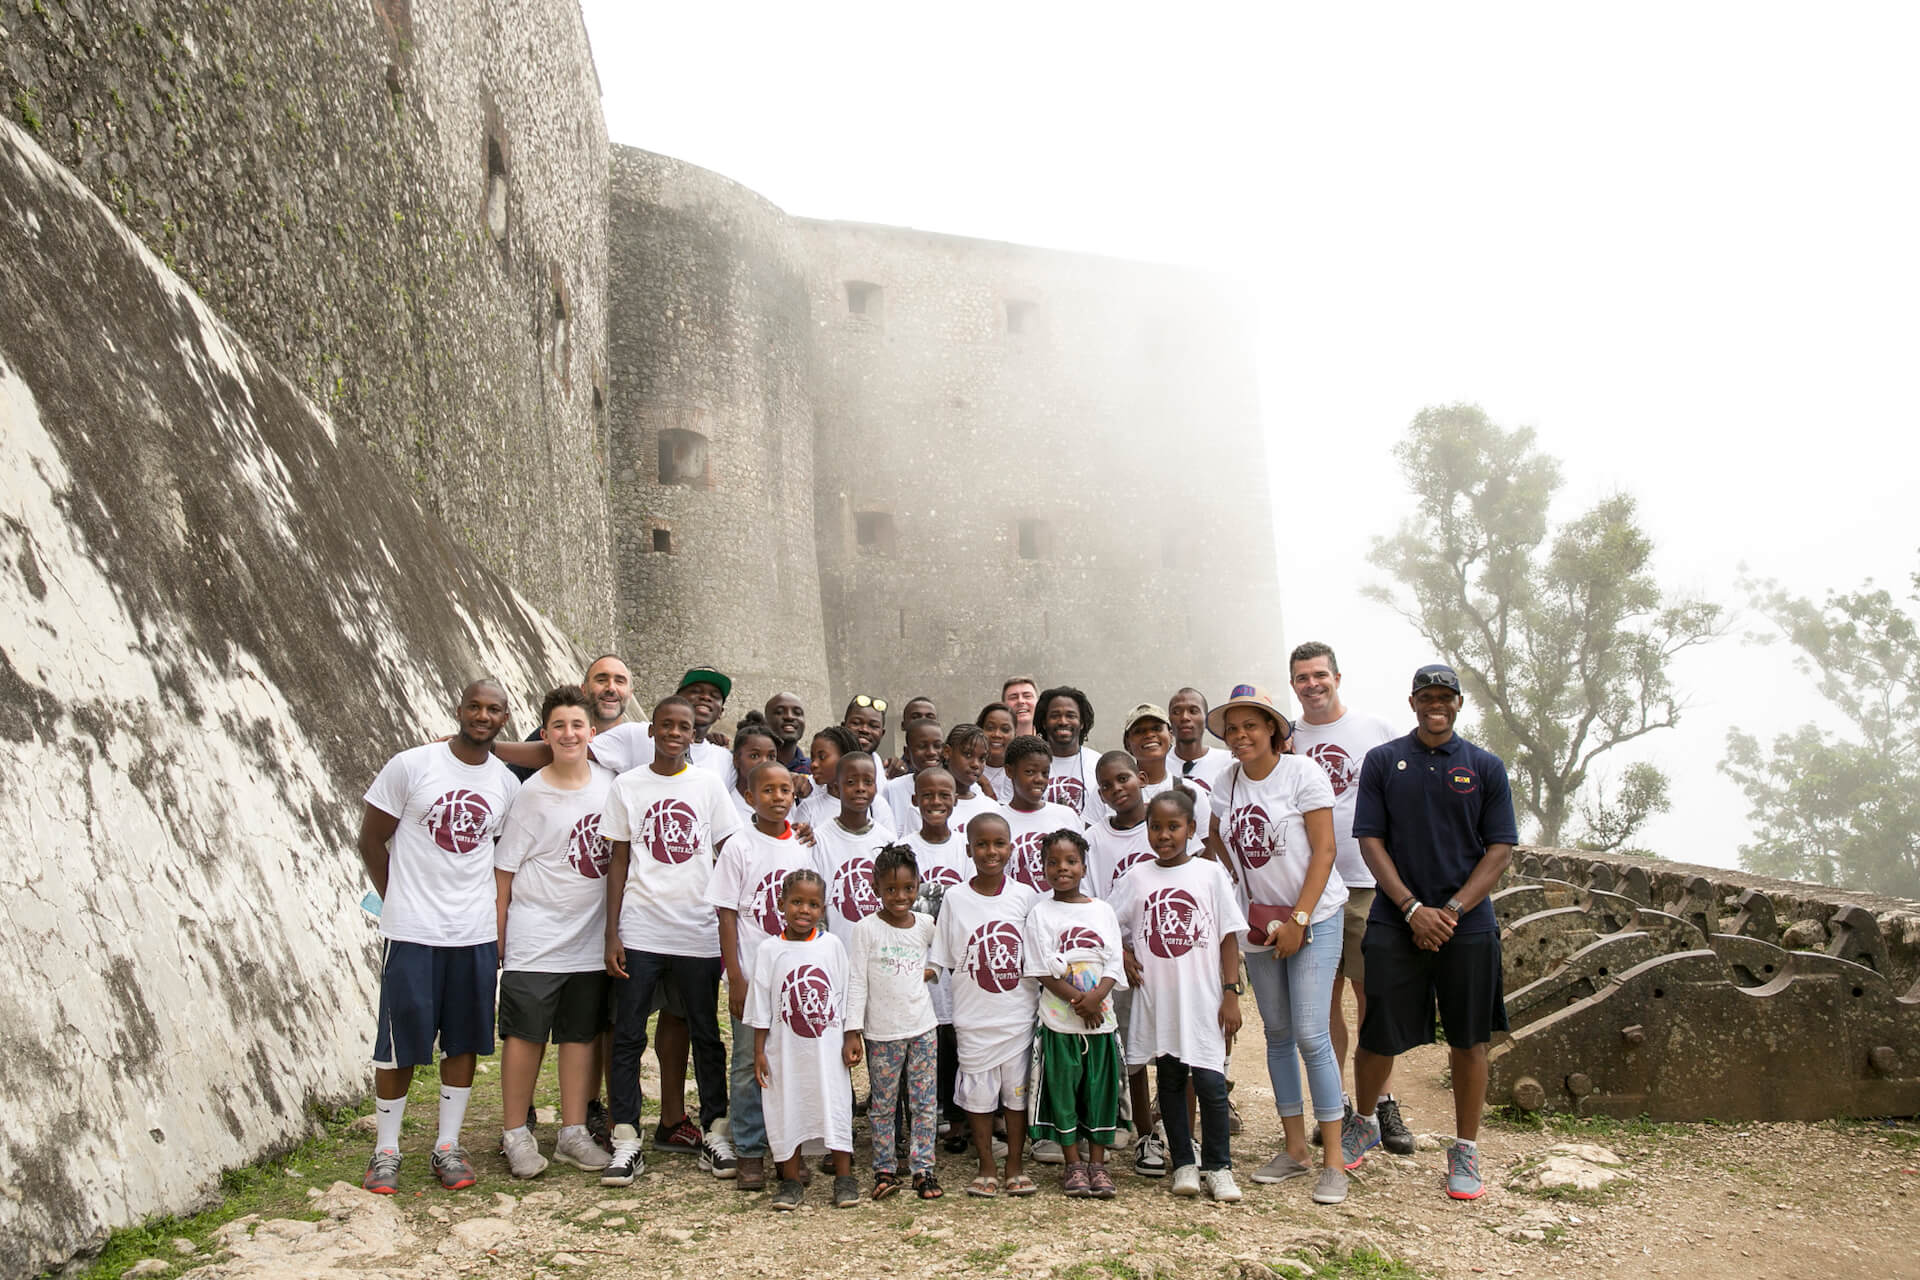 Our team and students on the base of The Citadelle. Once we arrived to Nord, Haiti, we had to walk up the mountain for about an hour to get to the actual fortress.